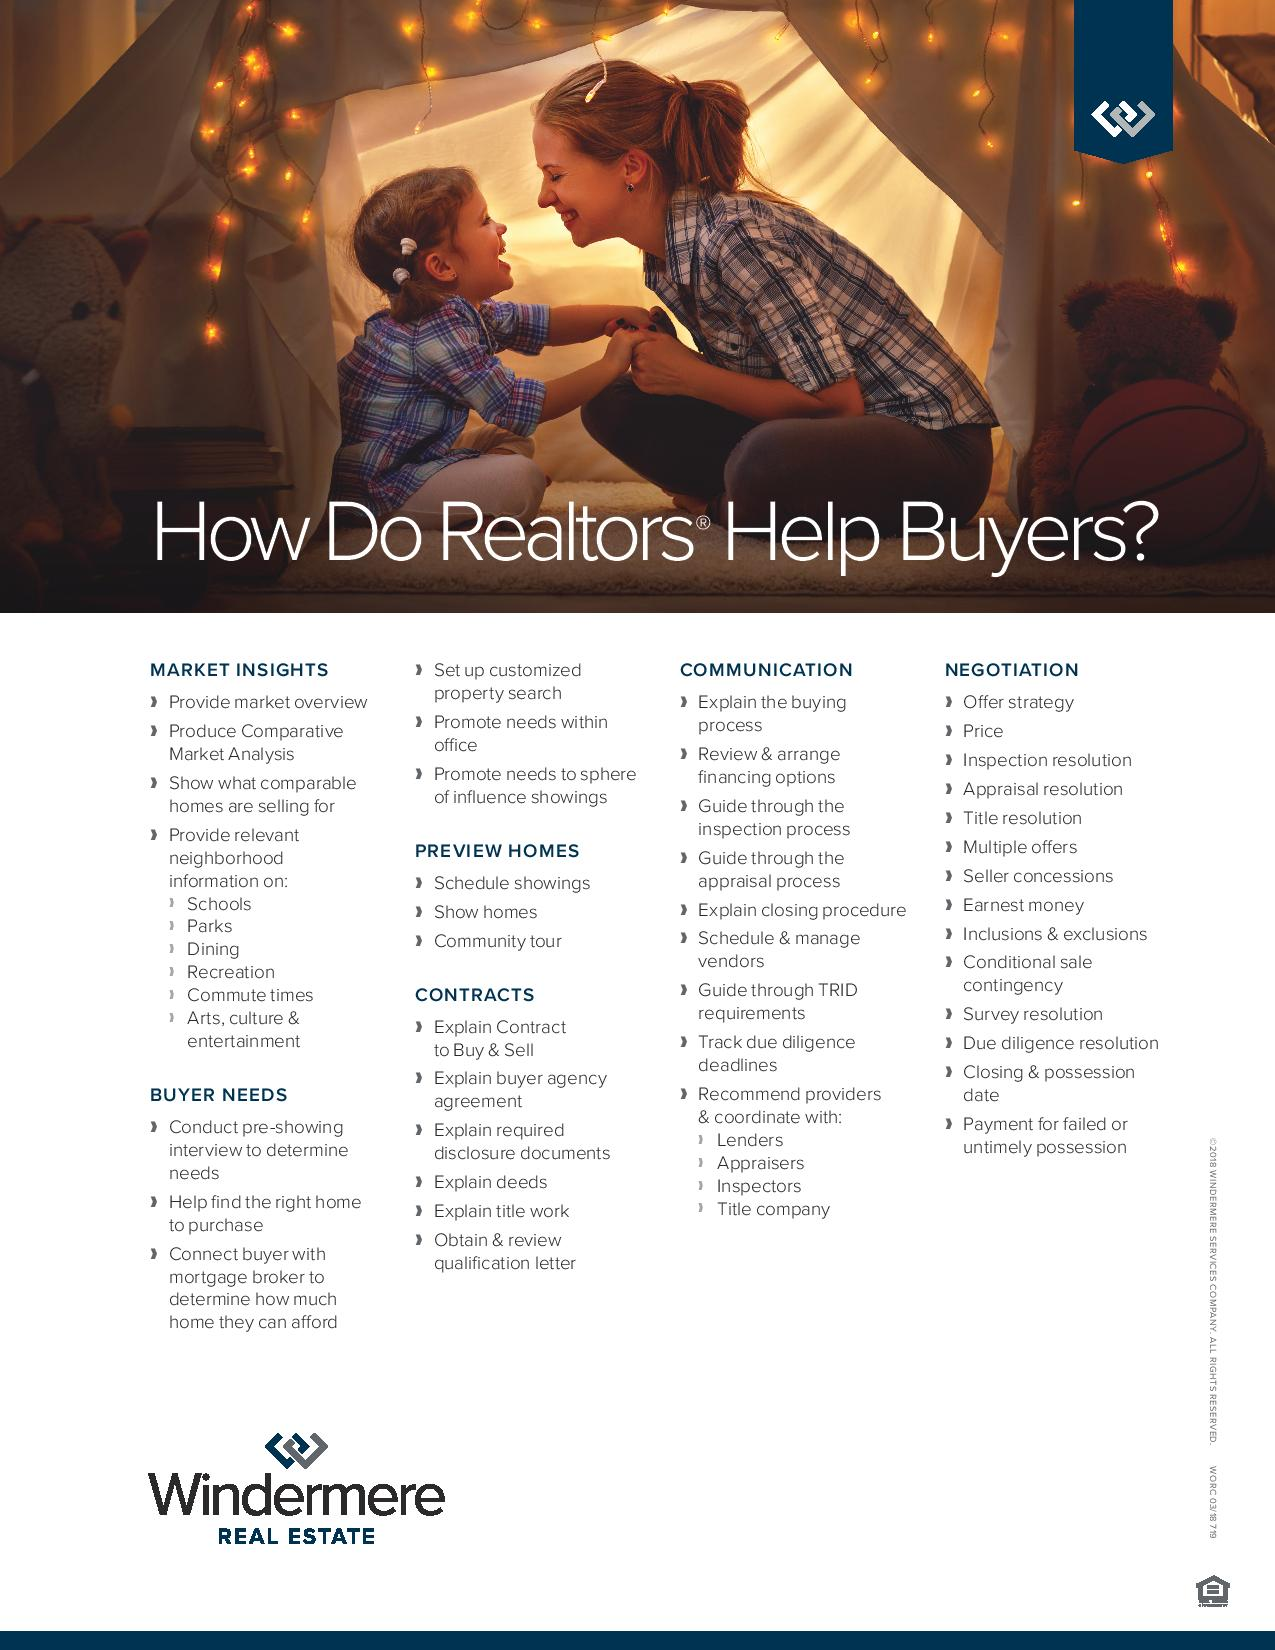 719 Services Realtors Provide to Buyers-page-001